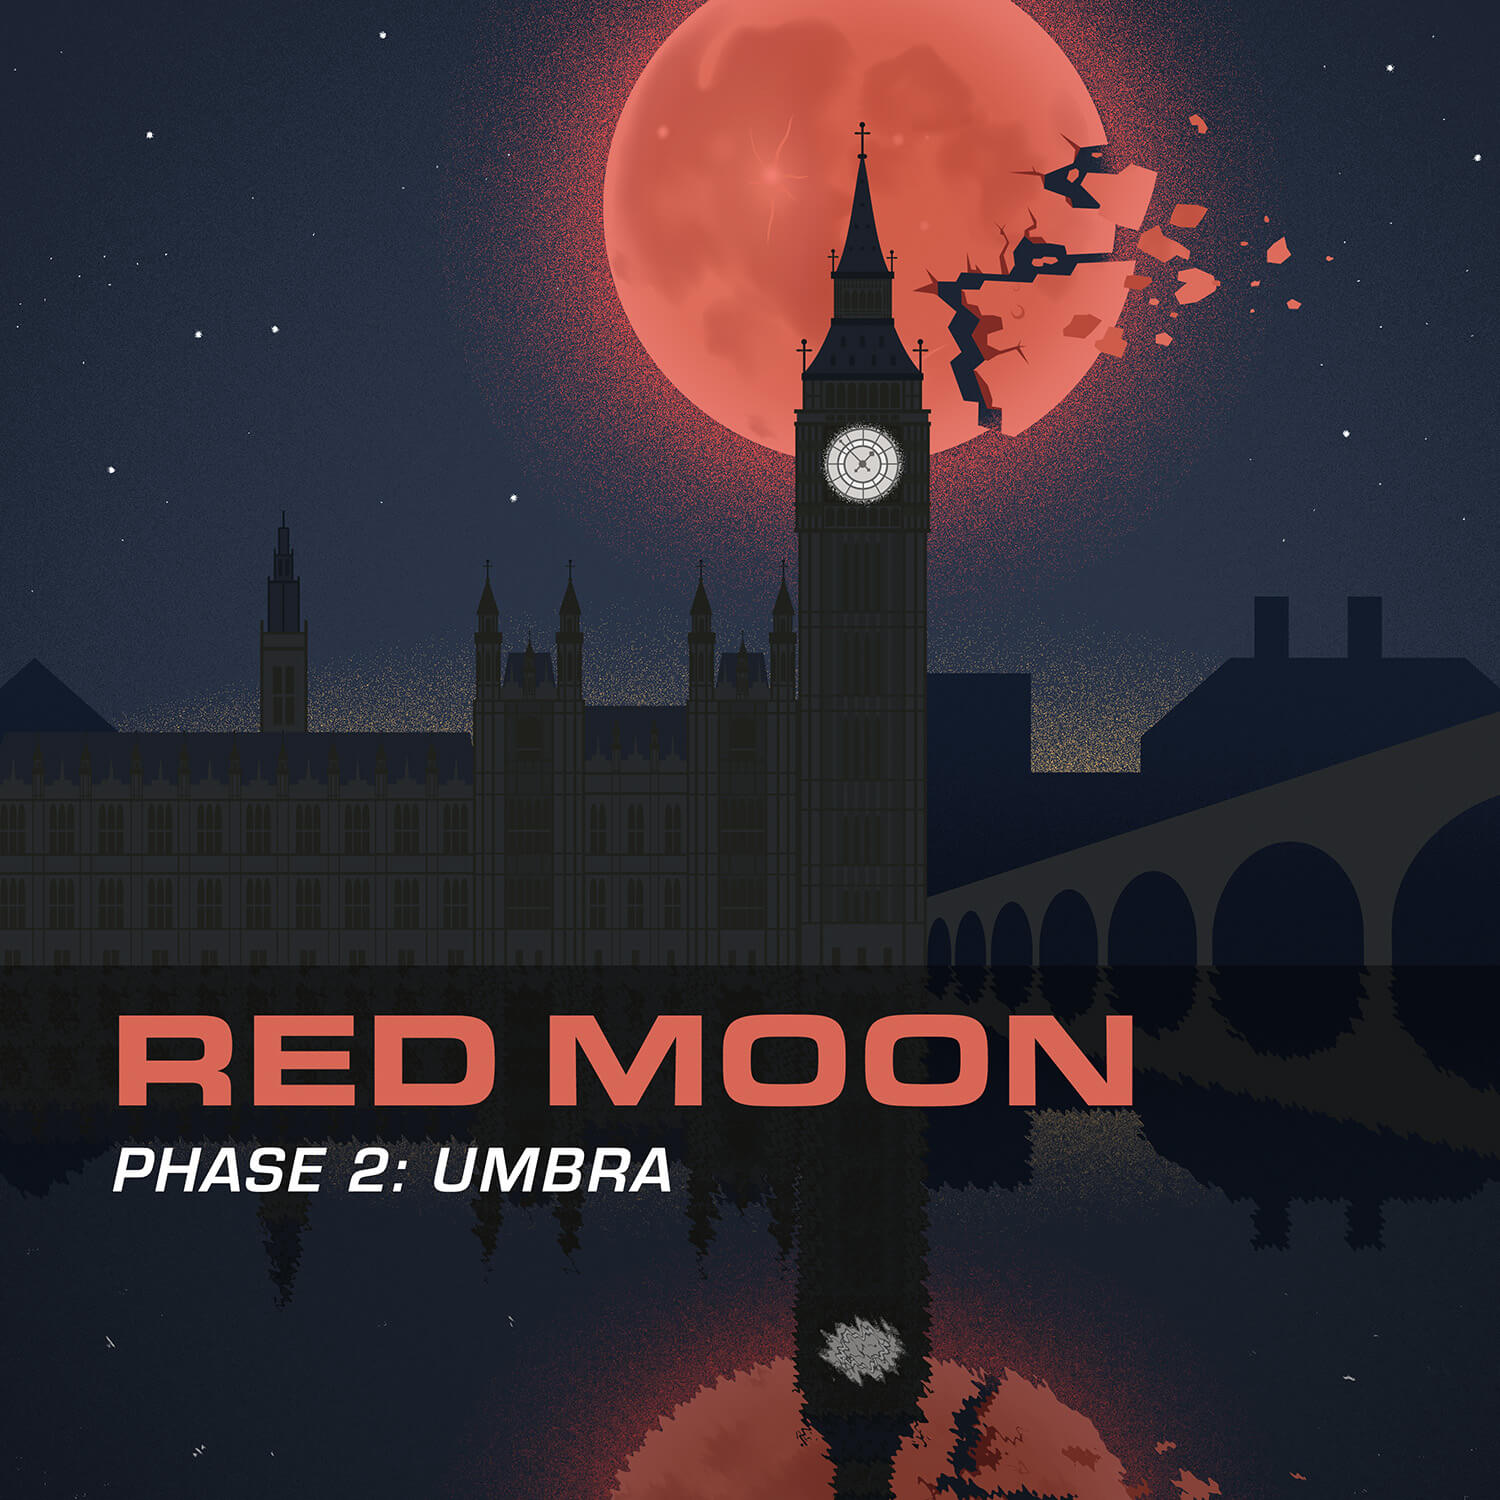 red moon cycle hunting - photo #14